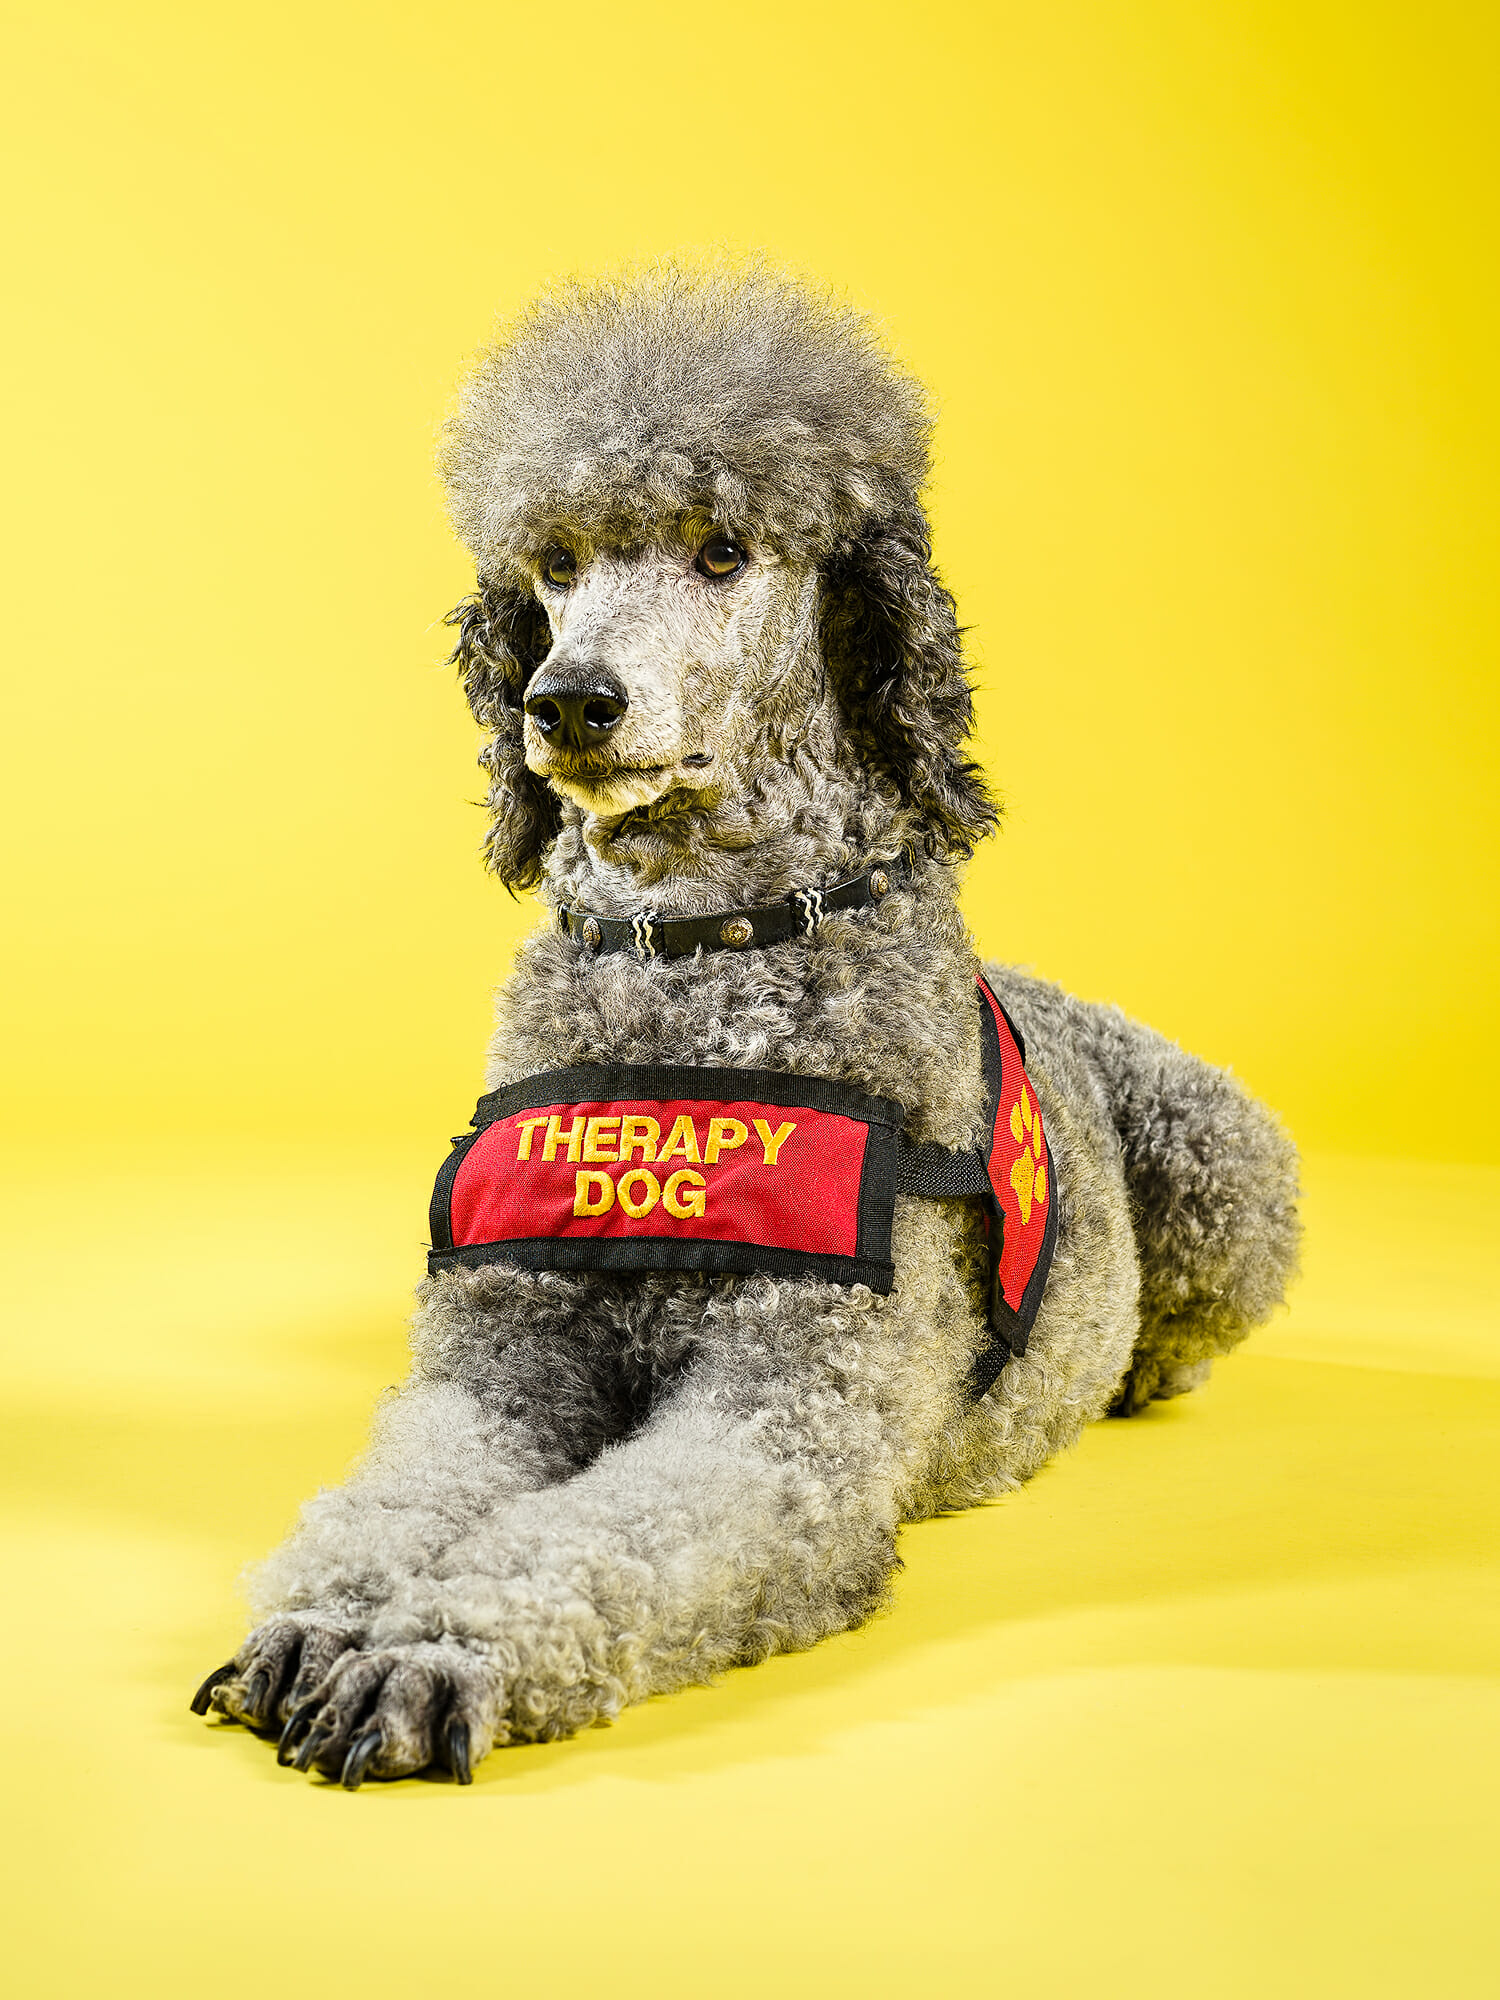 Poodle therapy dog Jodie